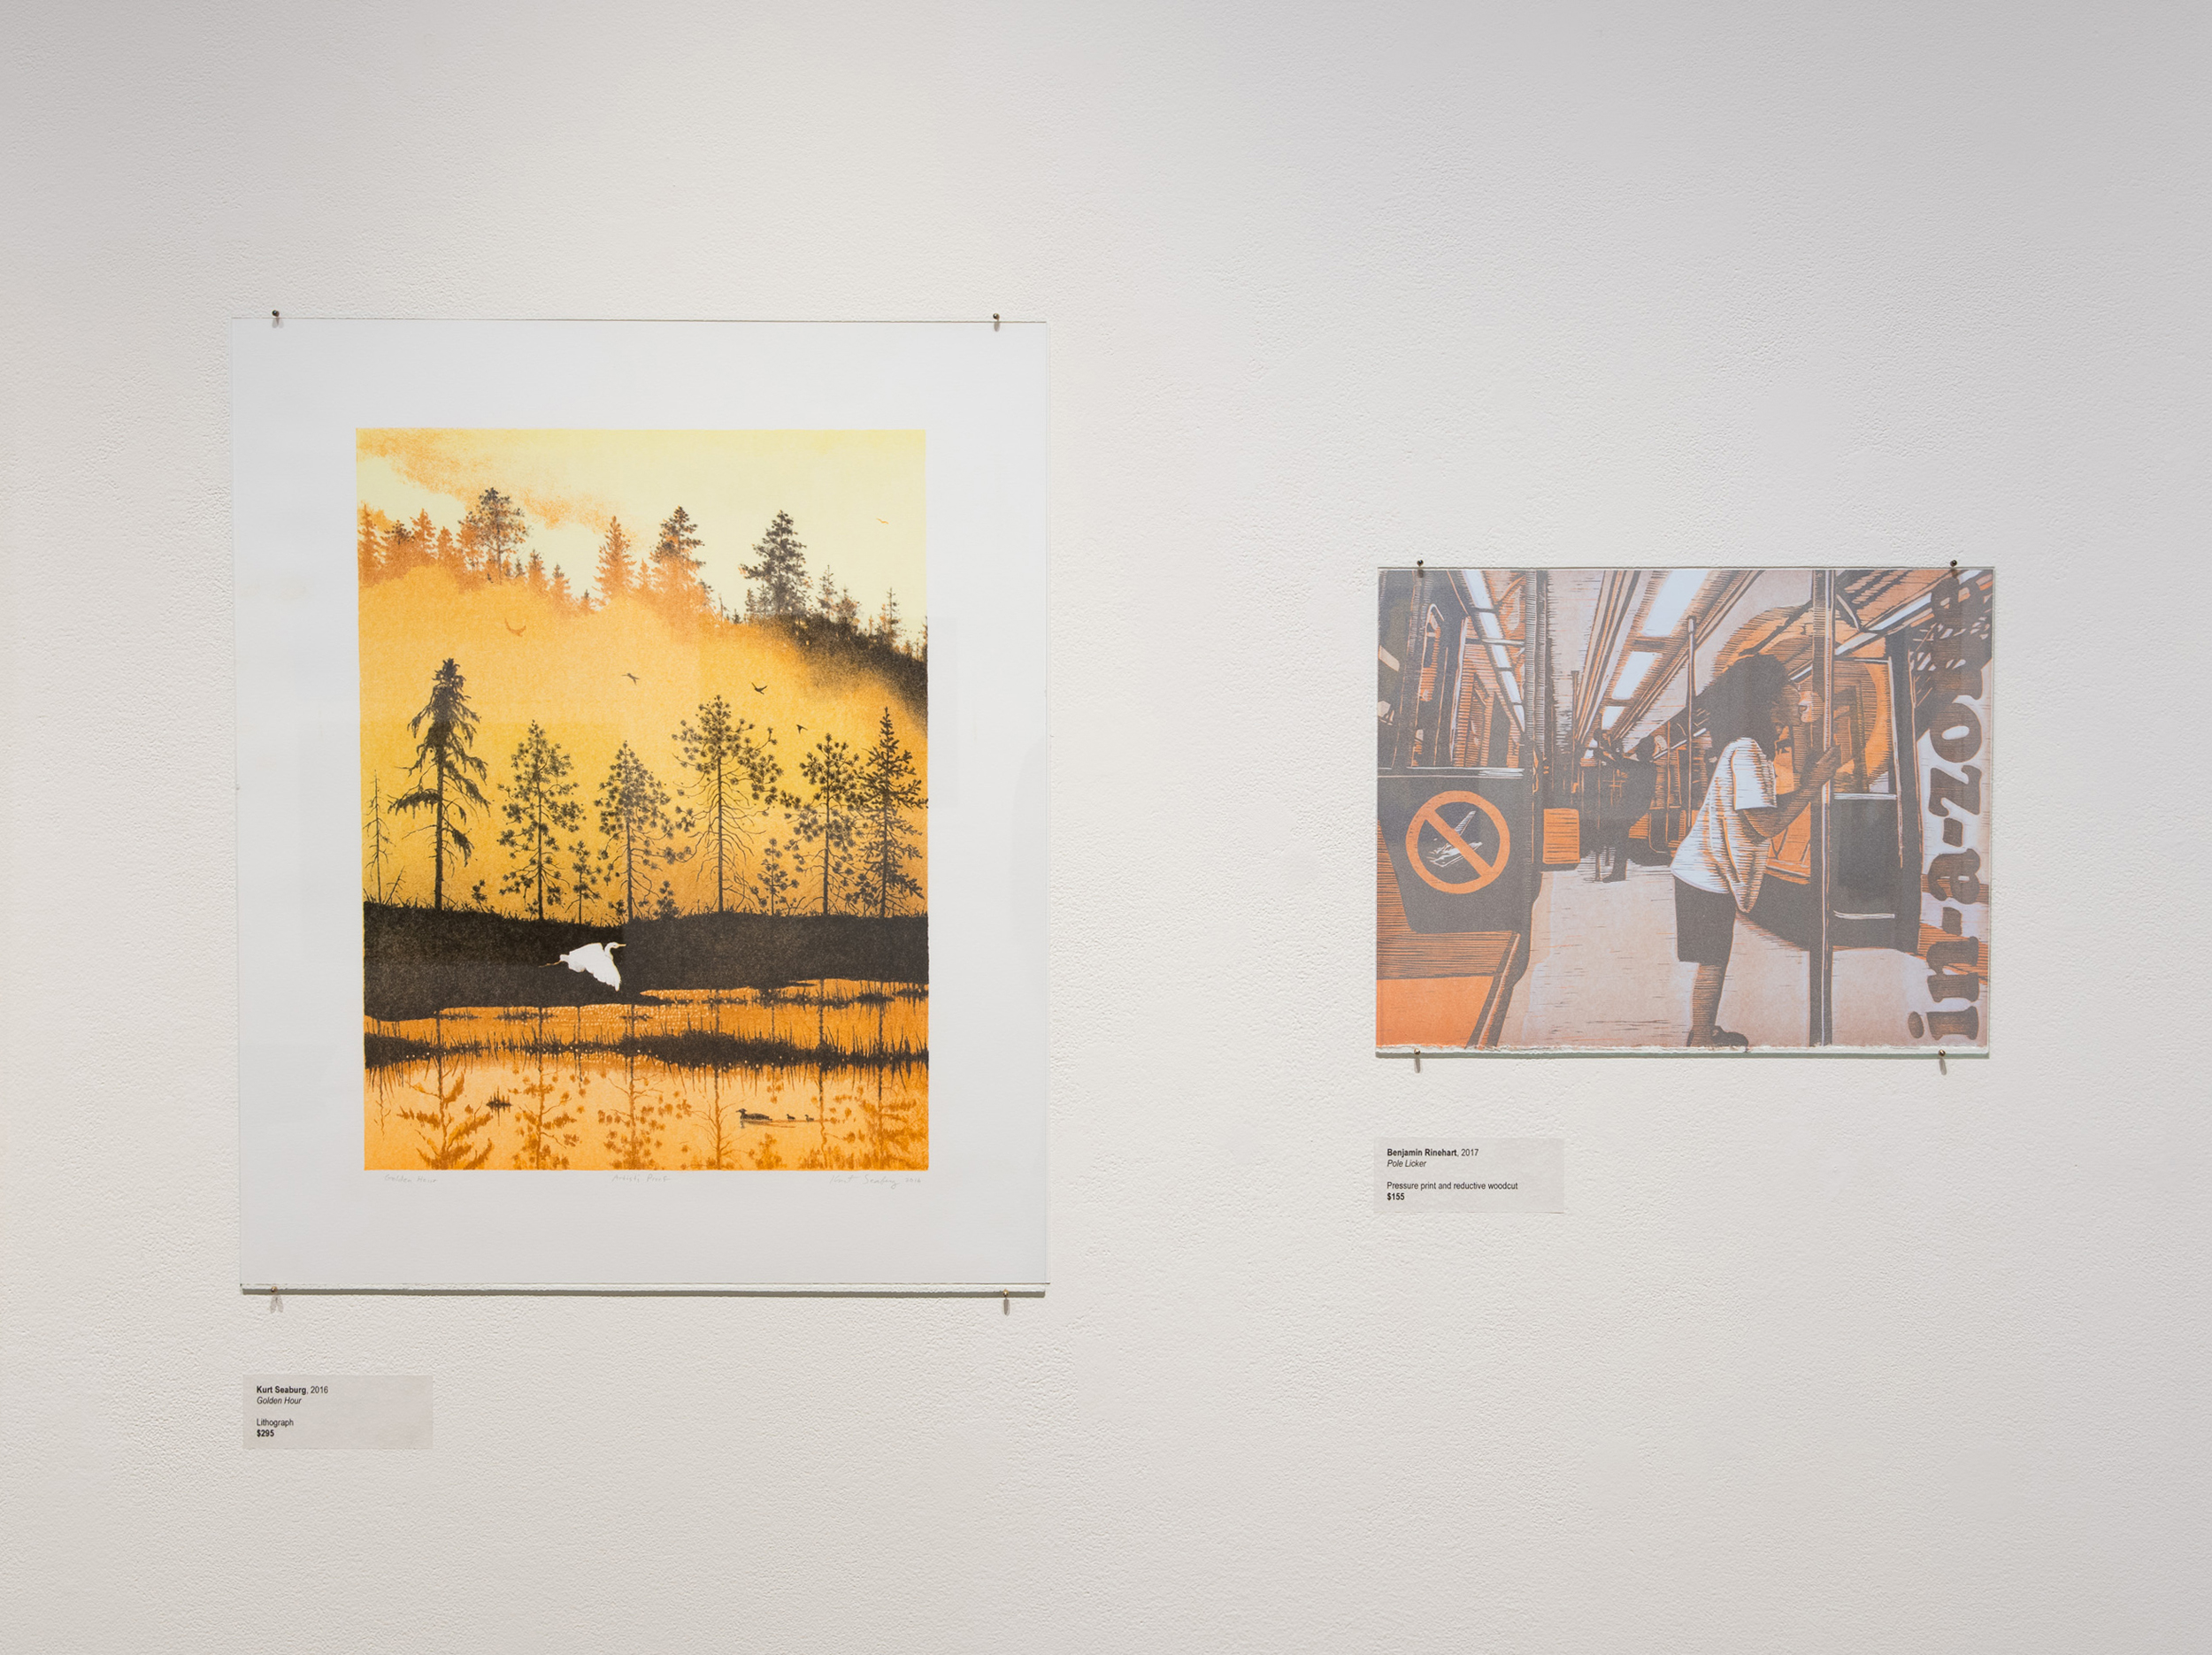 Highpoint PrintmakingStand Out Prints Exhibit180927a0450.JPG